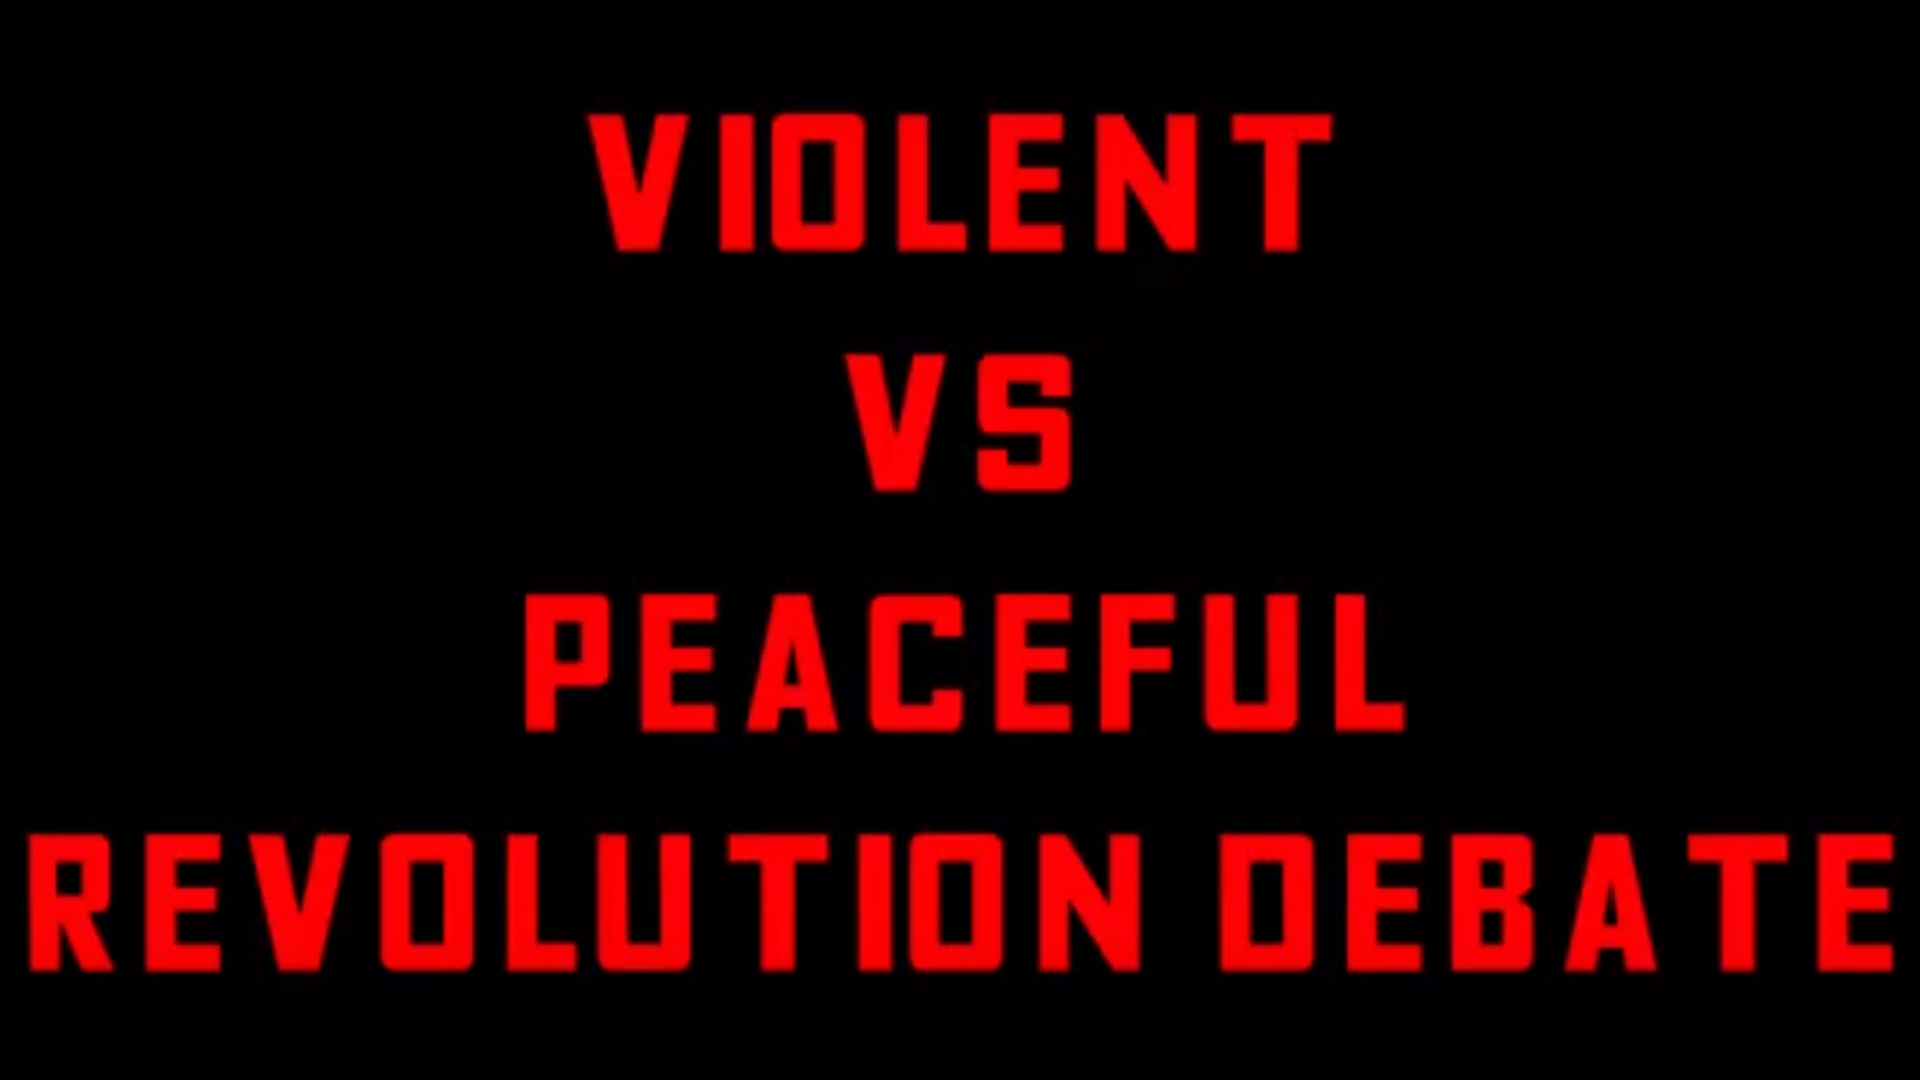 Violent Vs Peaceful Revolution Debate | Jeremiah Harding Vs Kodi Ranting | Opening Statements